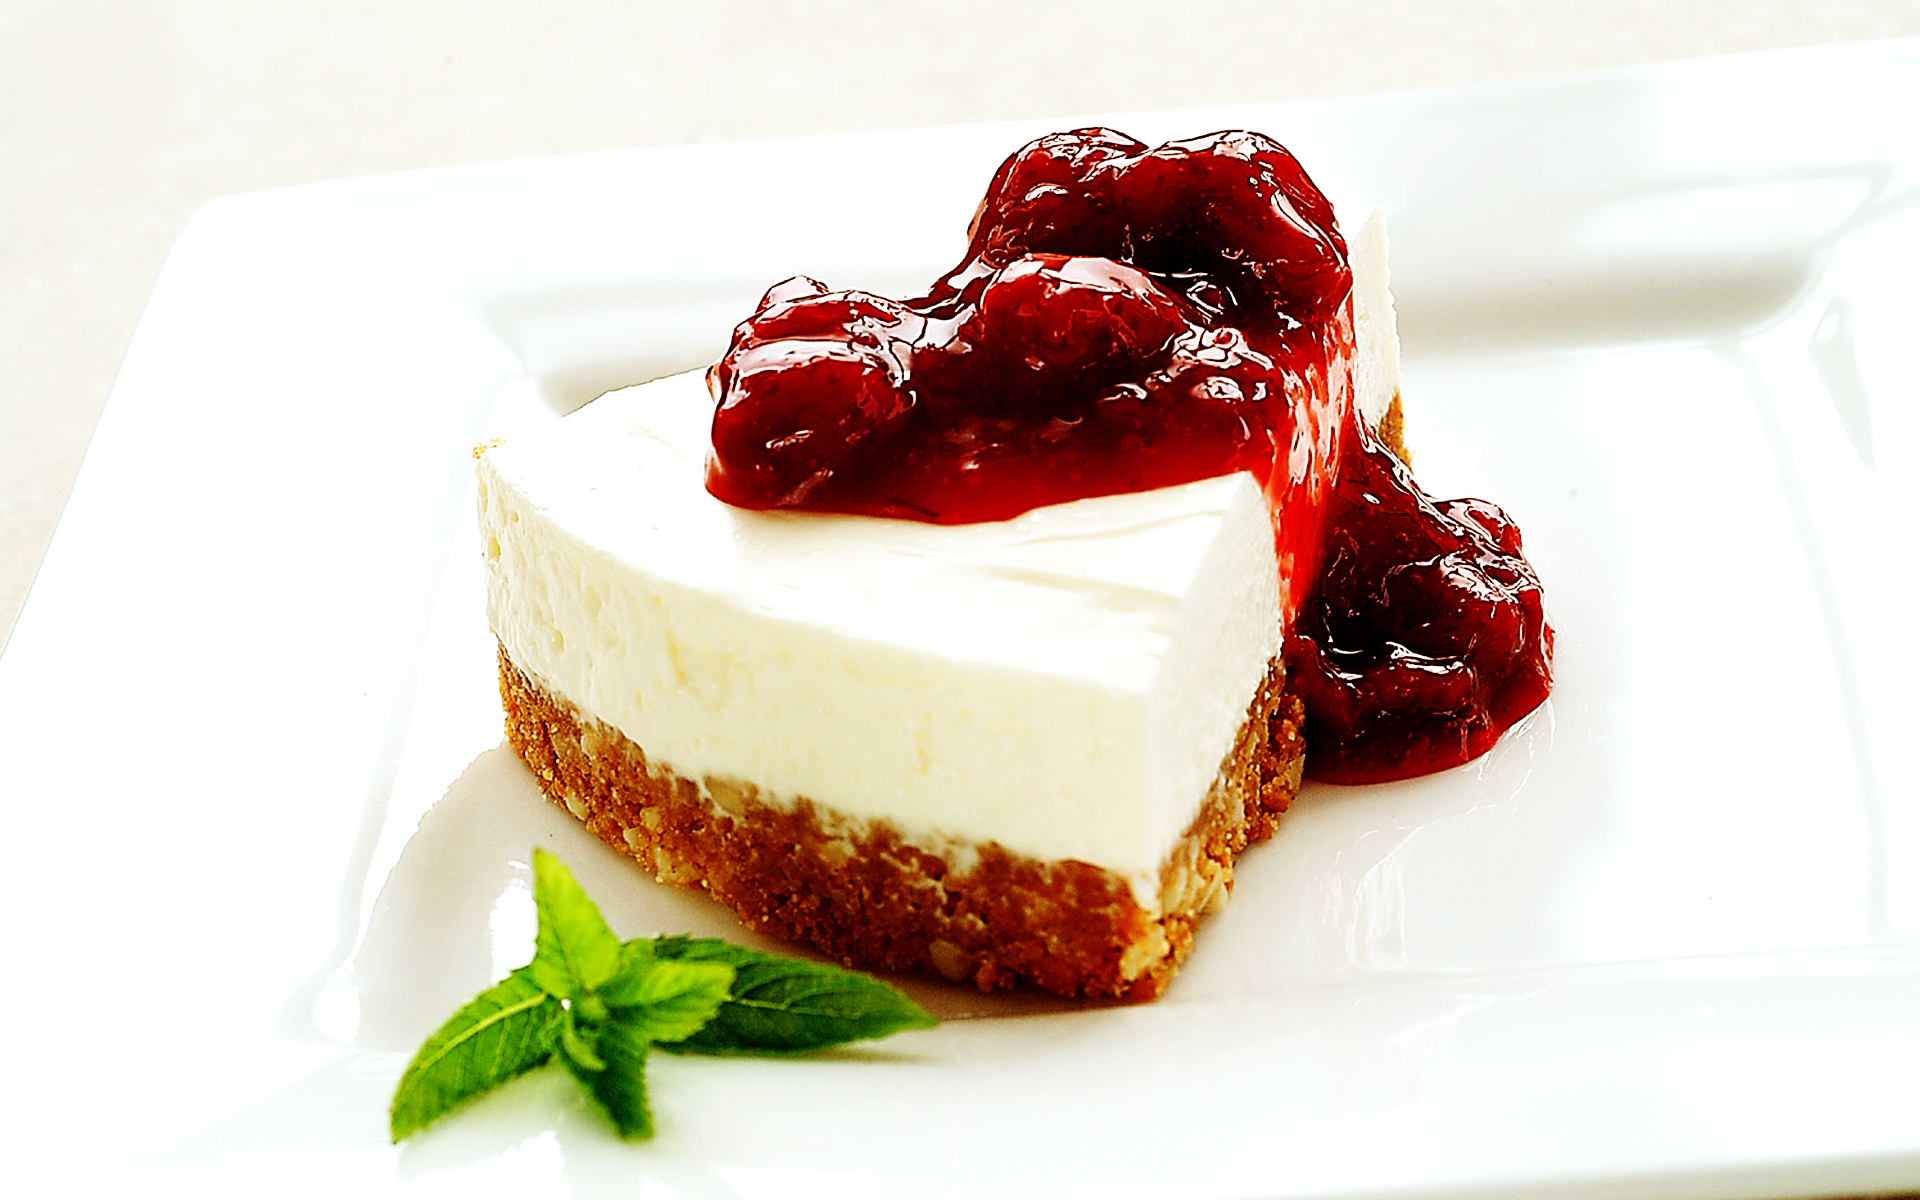 19 Cheesecake Hd Wallpapers Background Images